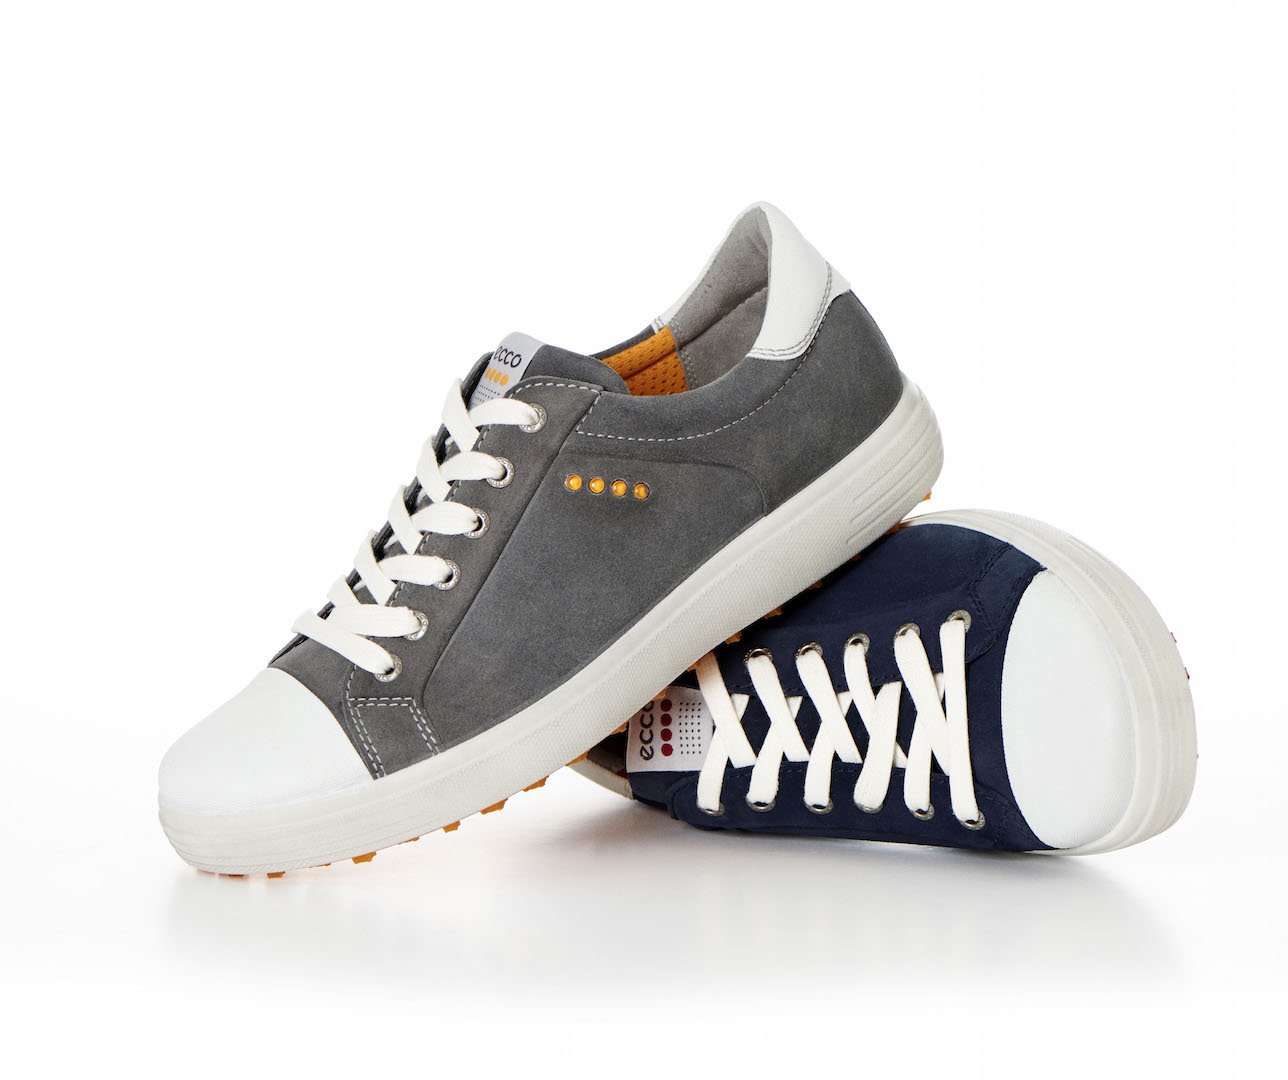 Sneaker Style Golf Shoes